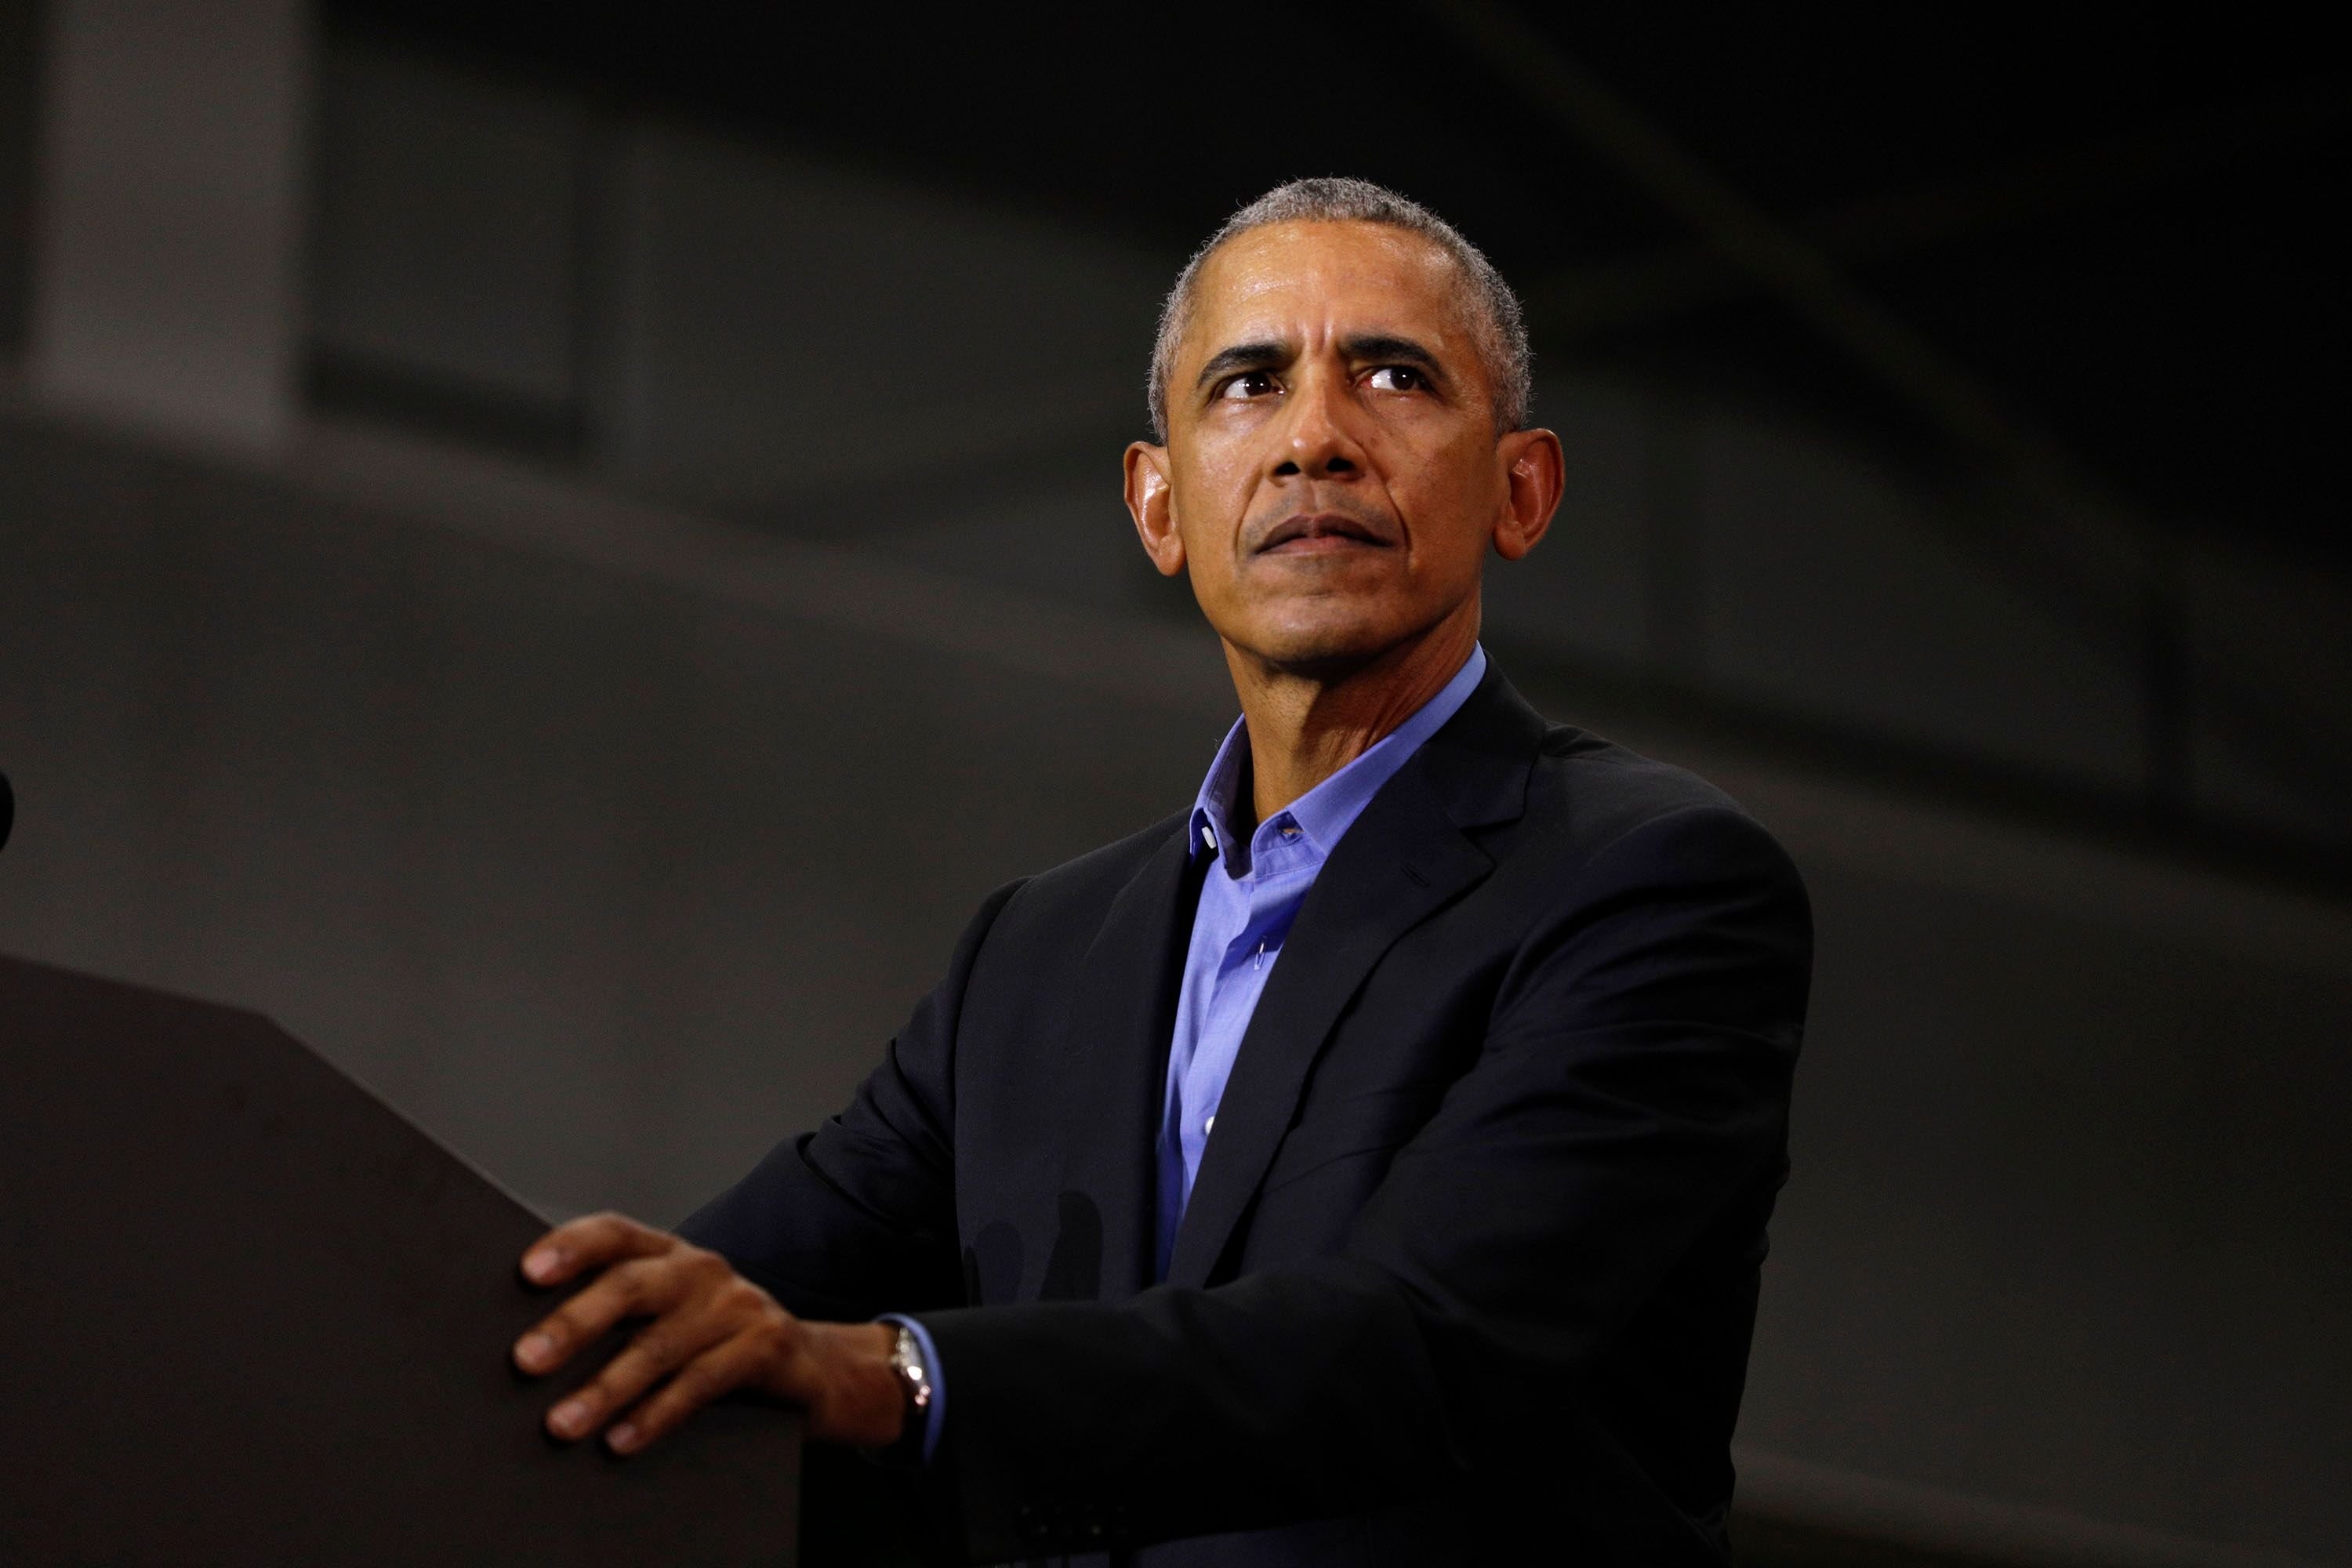 Former President Barack Obama speaks at a rally to support Michigan democratic candidates at Detroit Cass Tech High School on October 26, 2018 | Photo: Getty Images